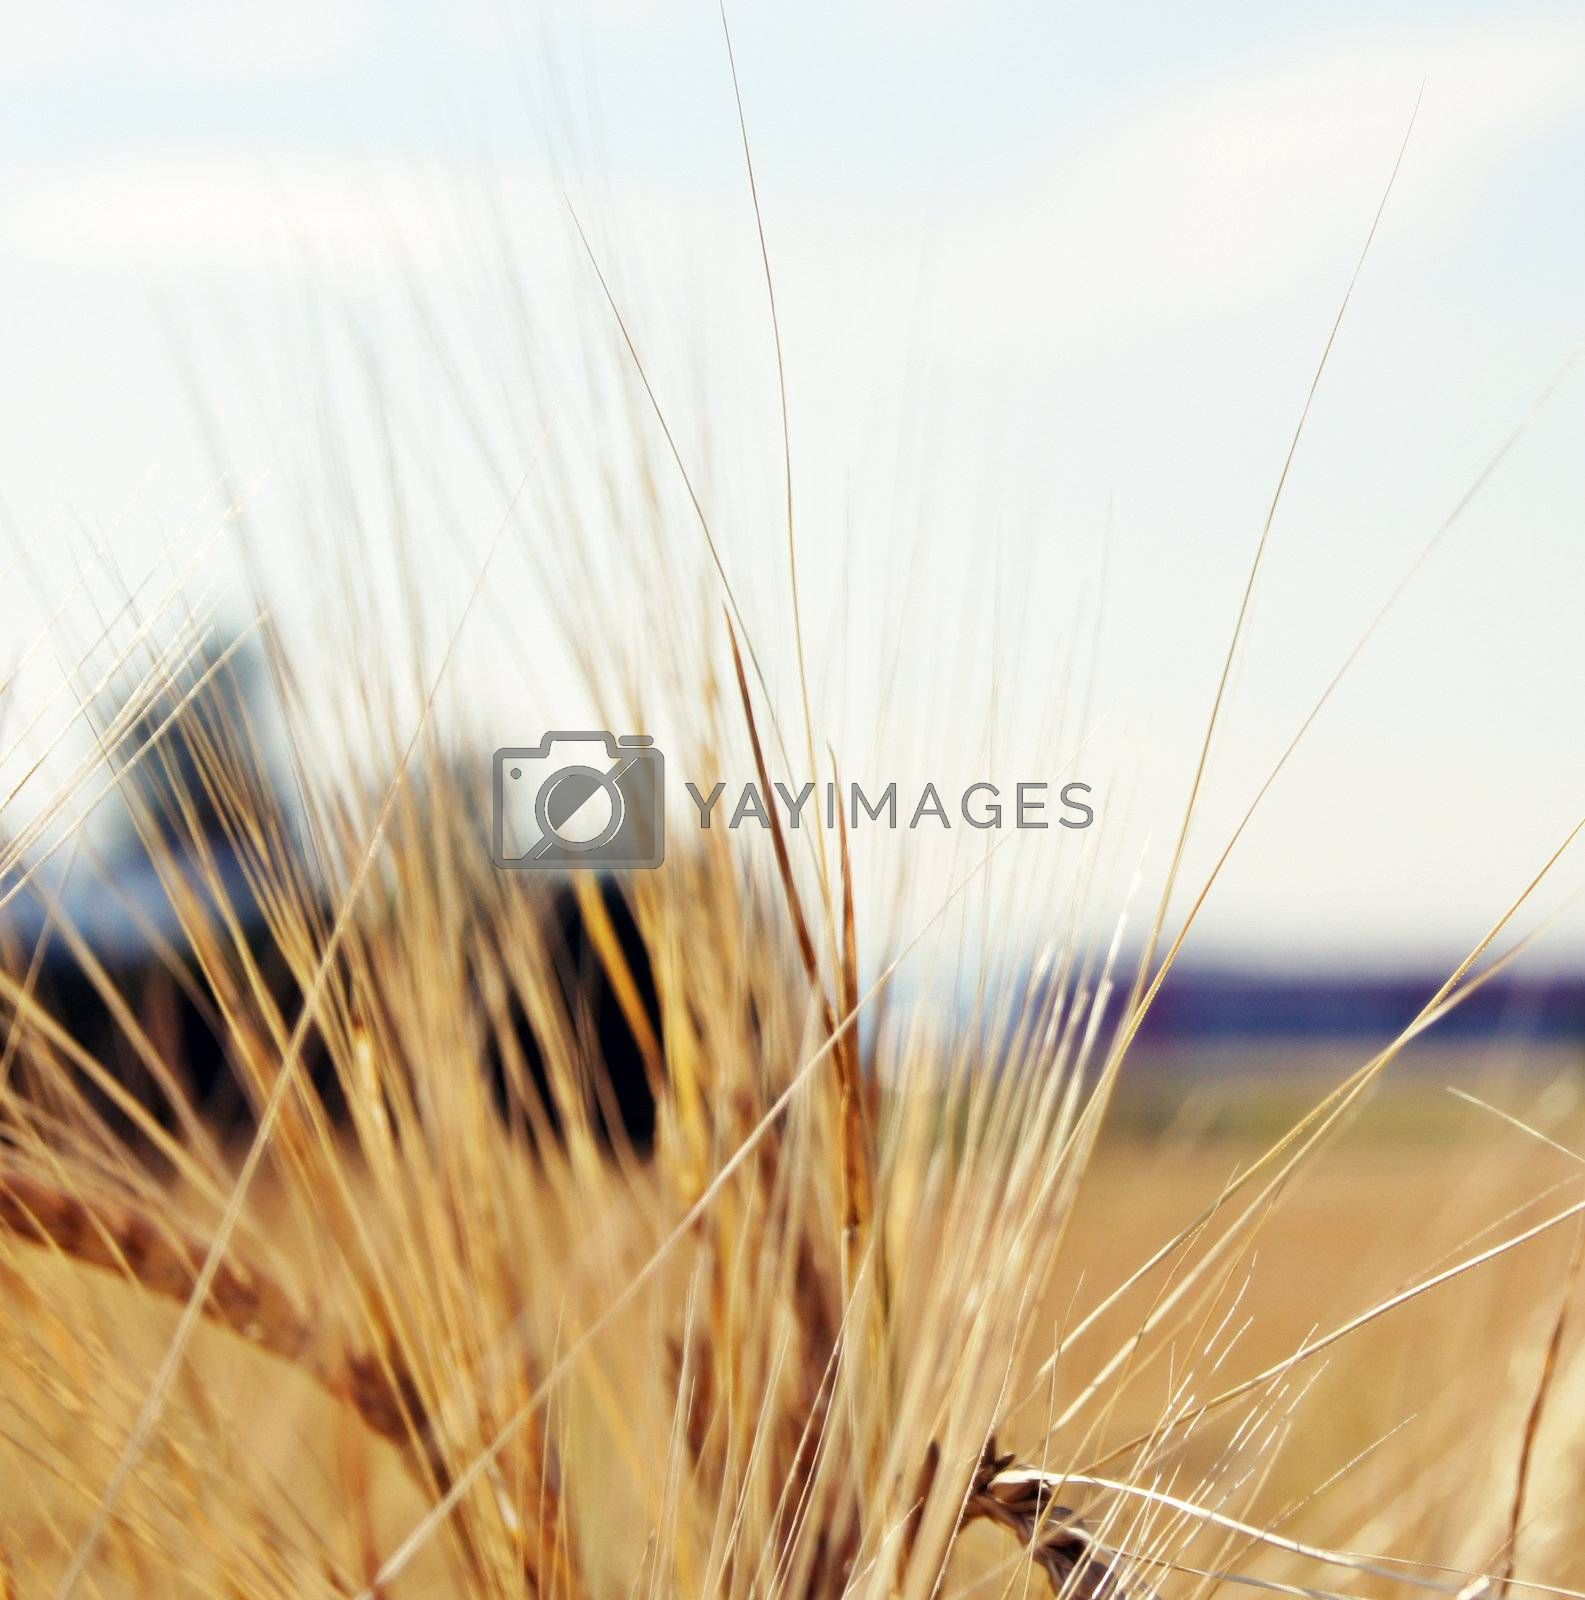 Close up of a photography cereal awn or ear of corn.